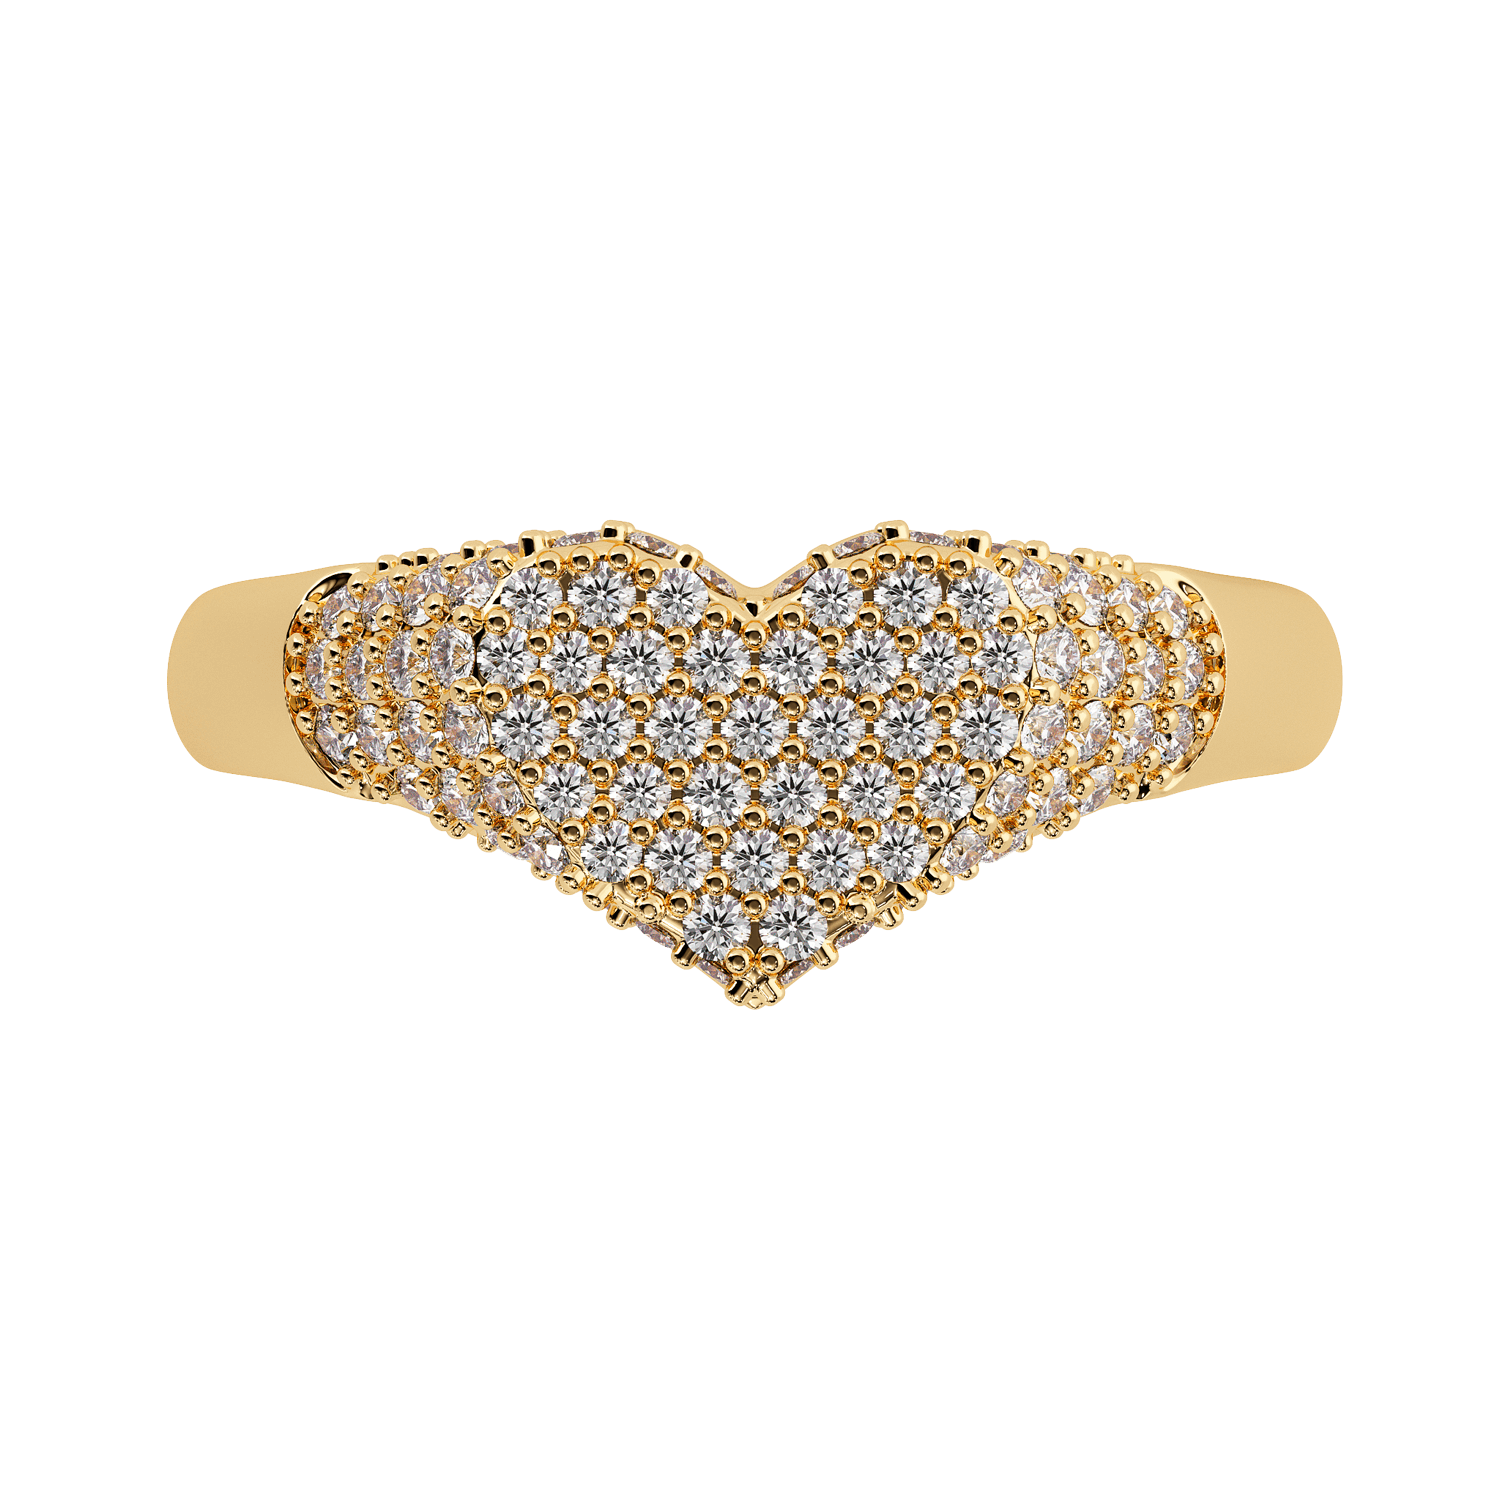 Diamond Heart Pave Signet Ring